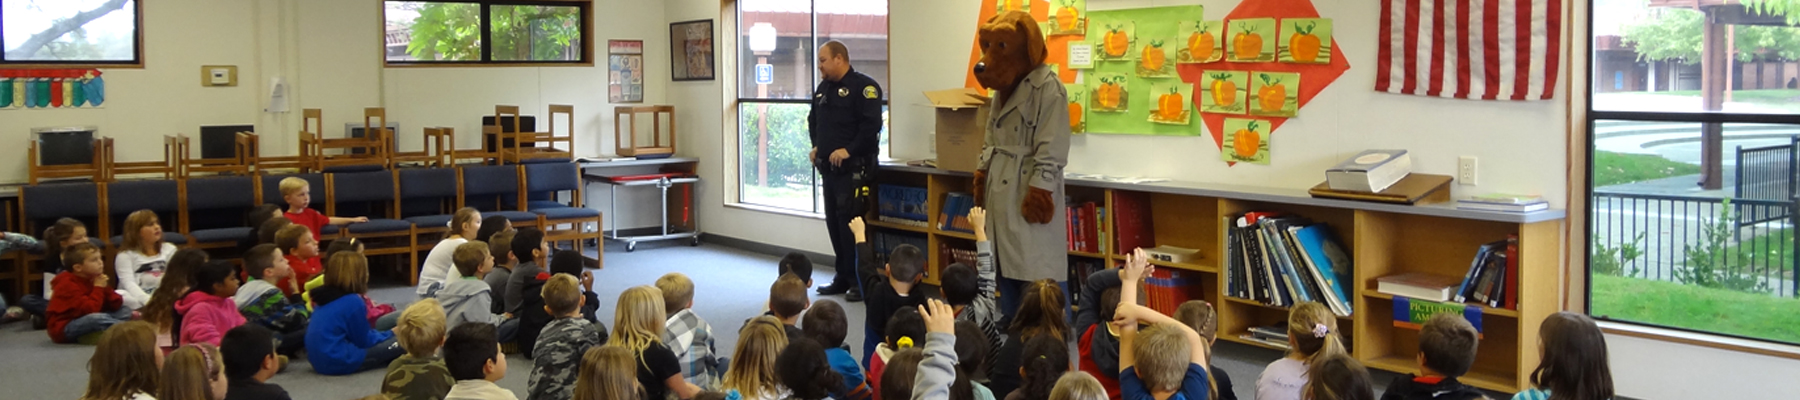 Sonora Police Department – Serving the Community – Sonora CA